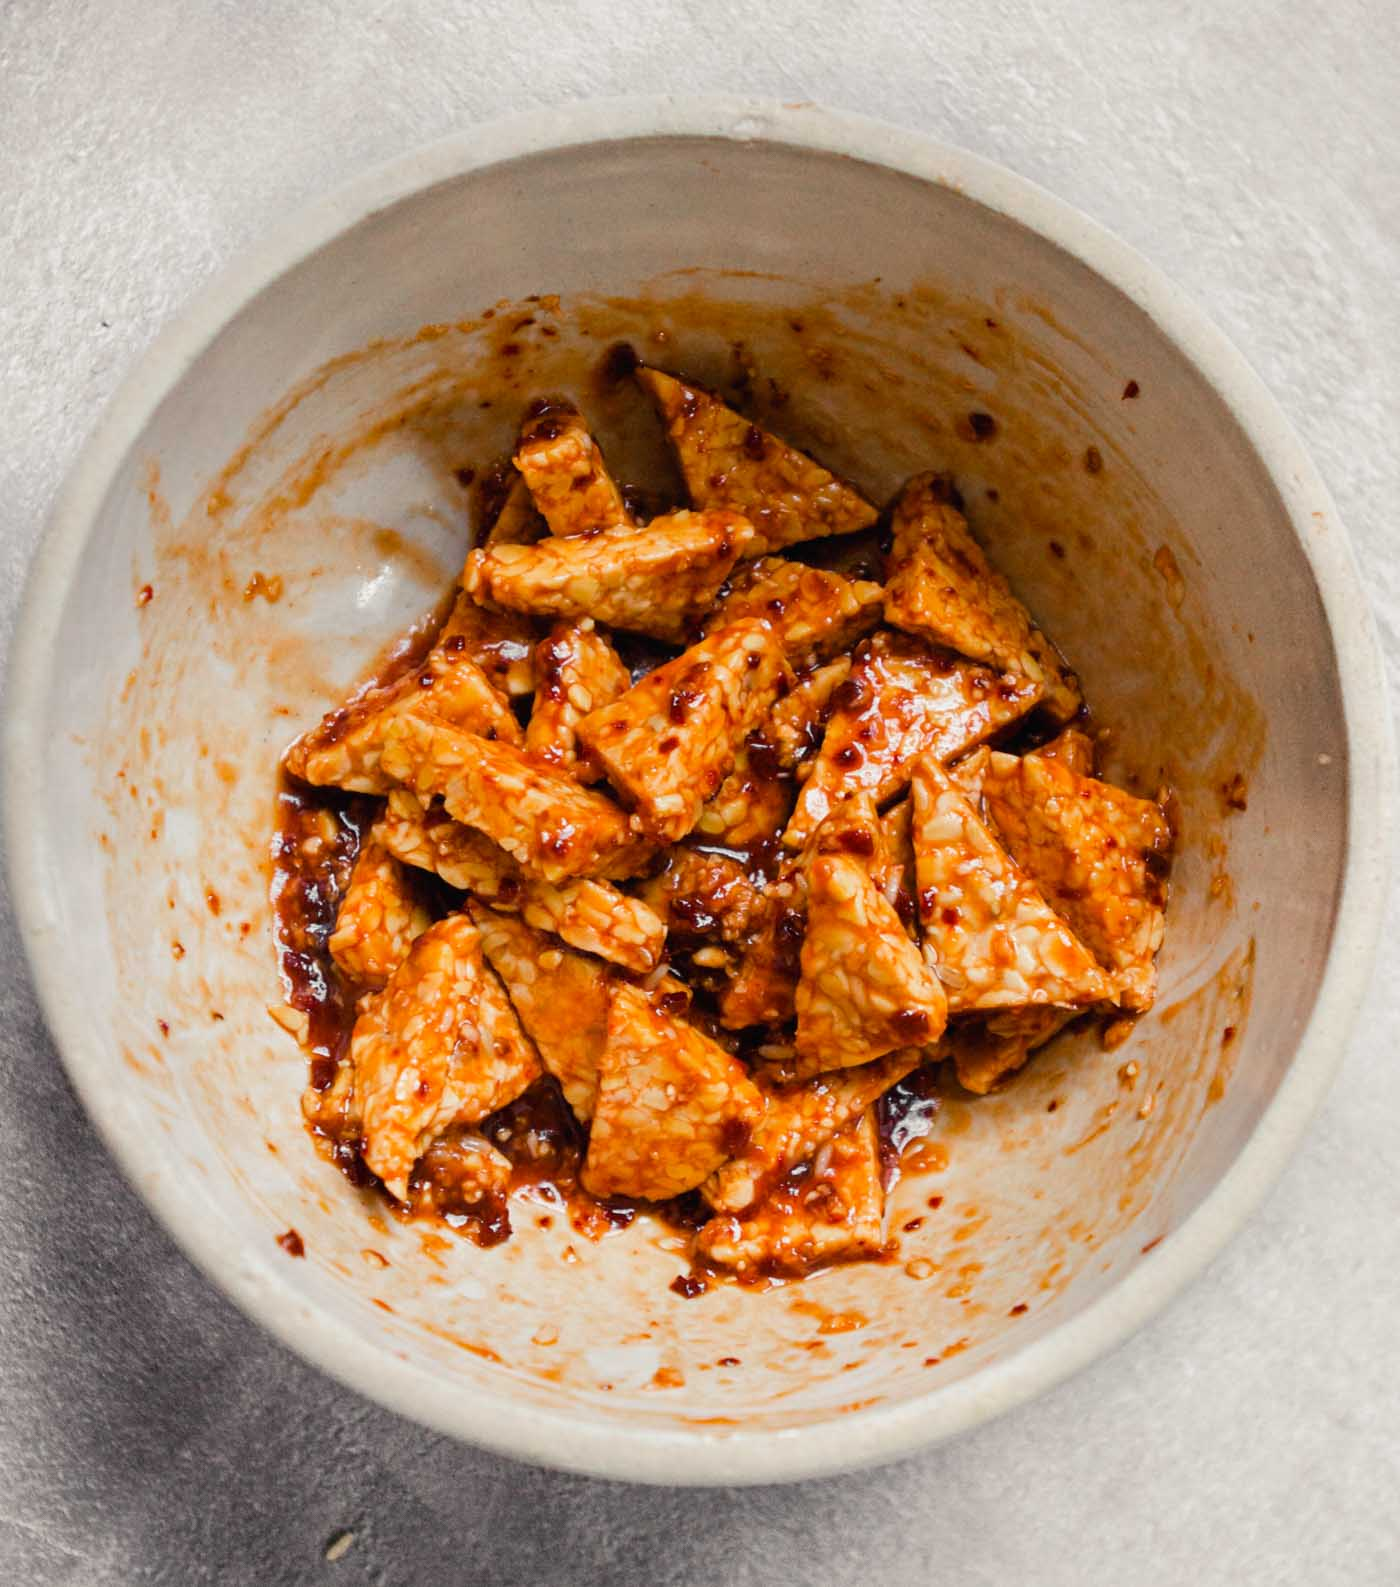 Photograph of tempeh marinated in a red sauce in a cream-colored bowl